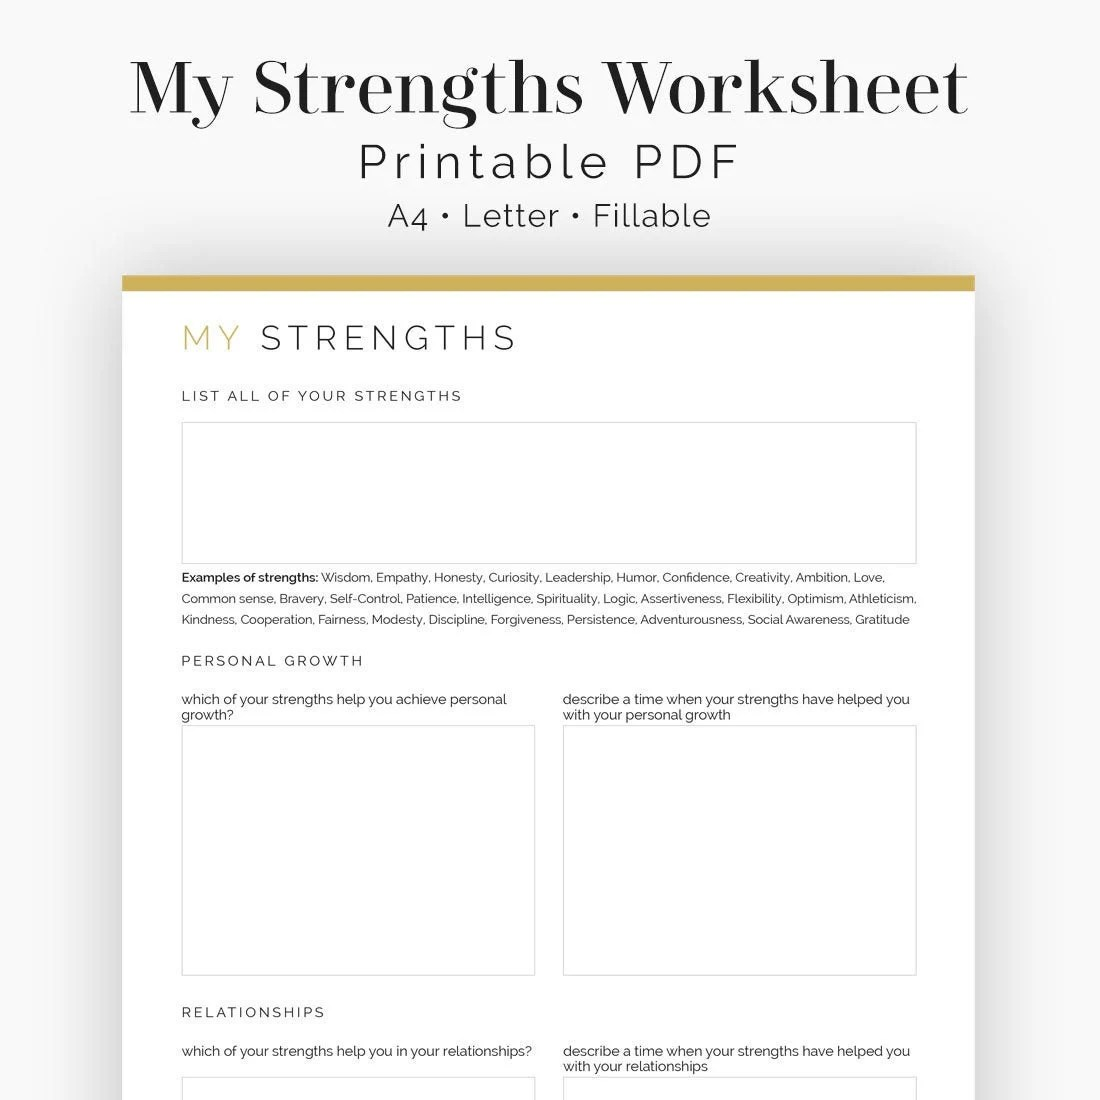 My Strengths Worksheet Fillable Printable Mental